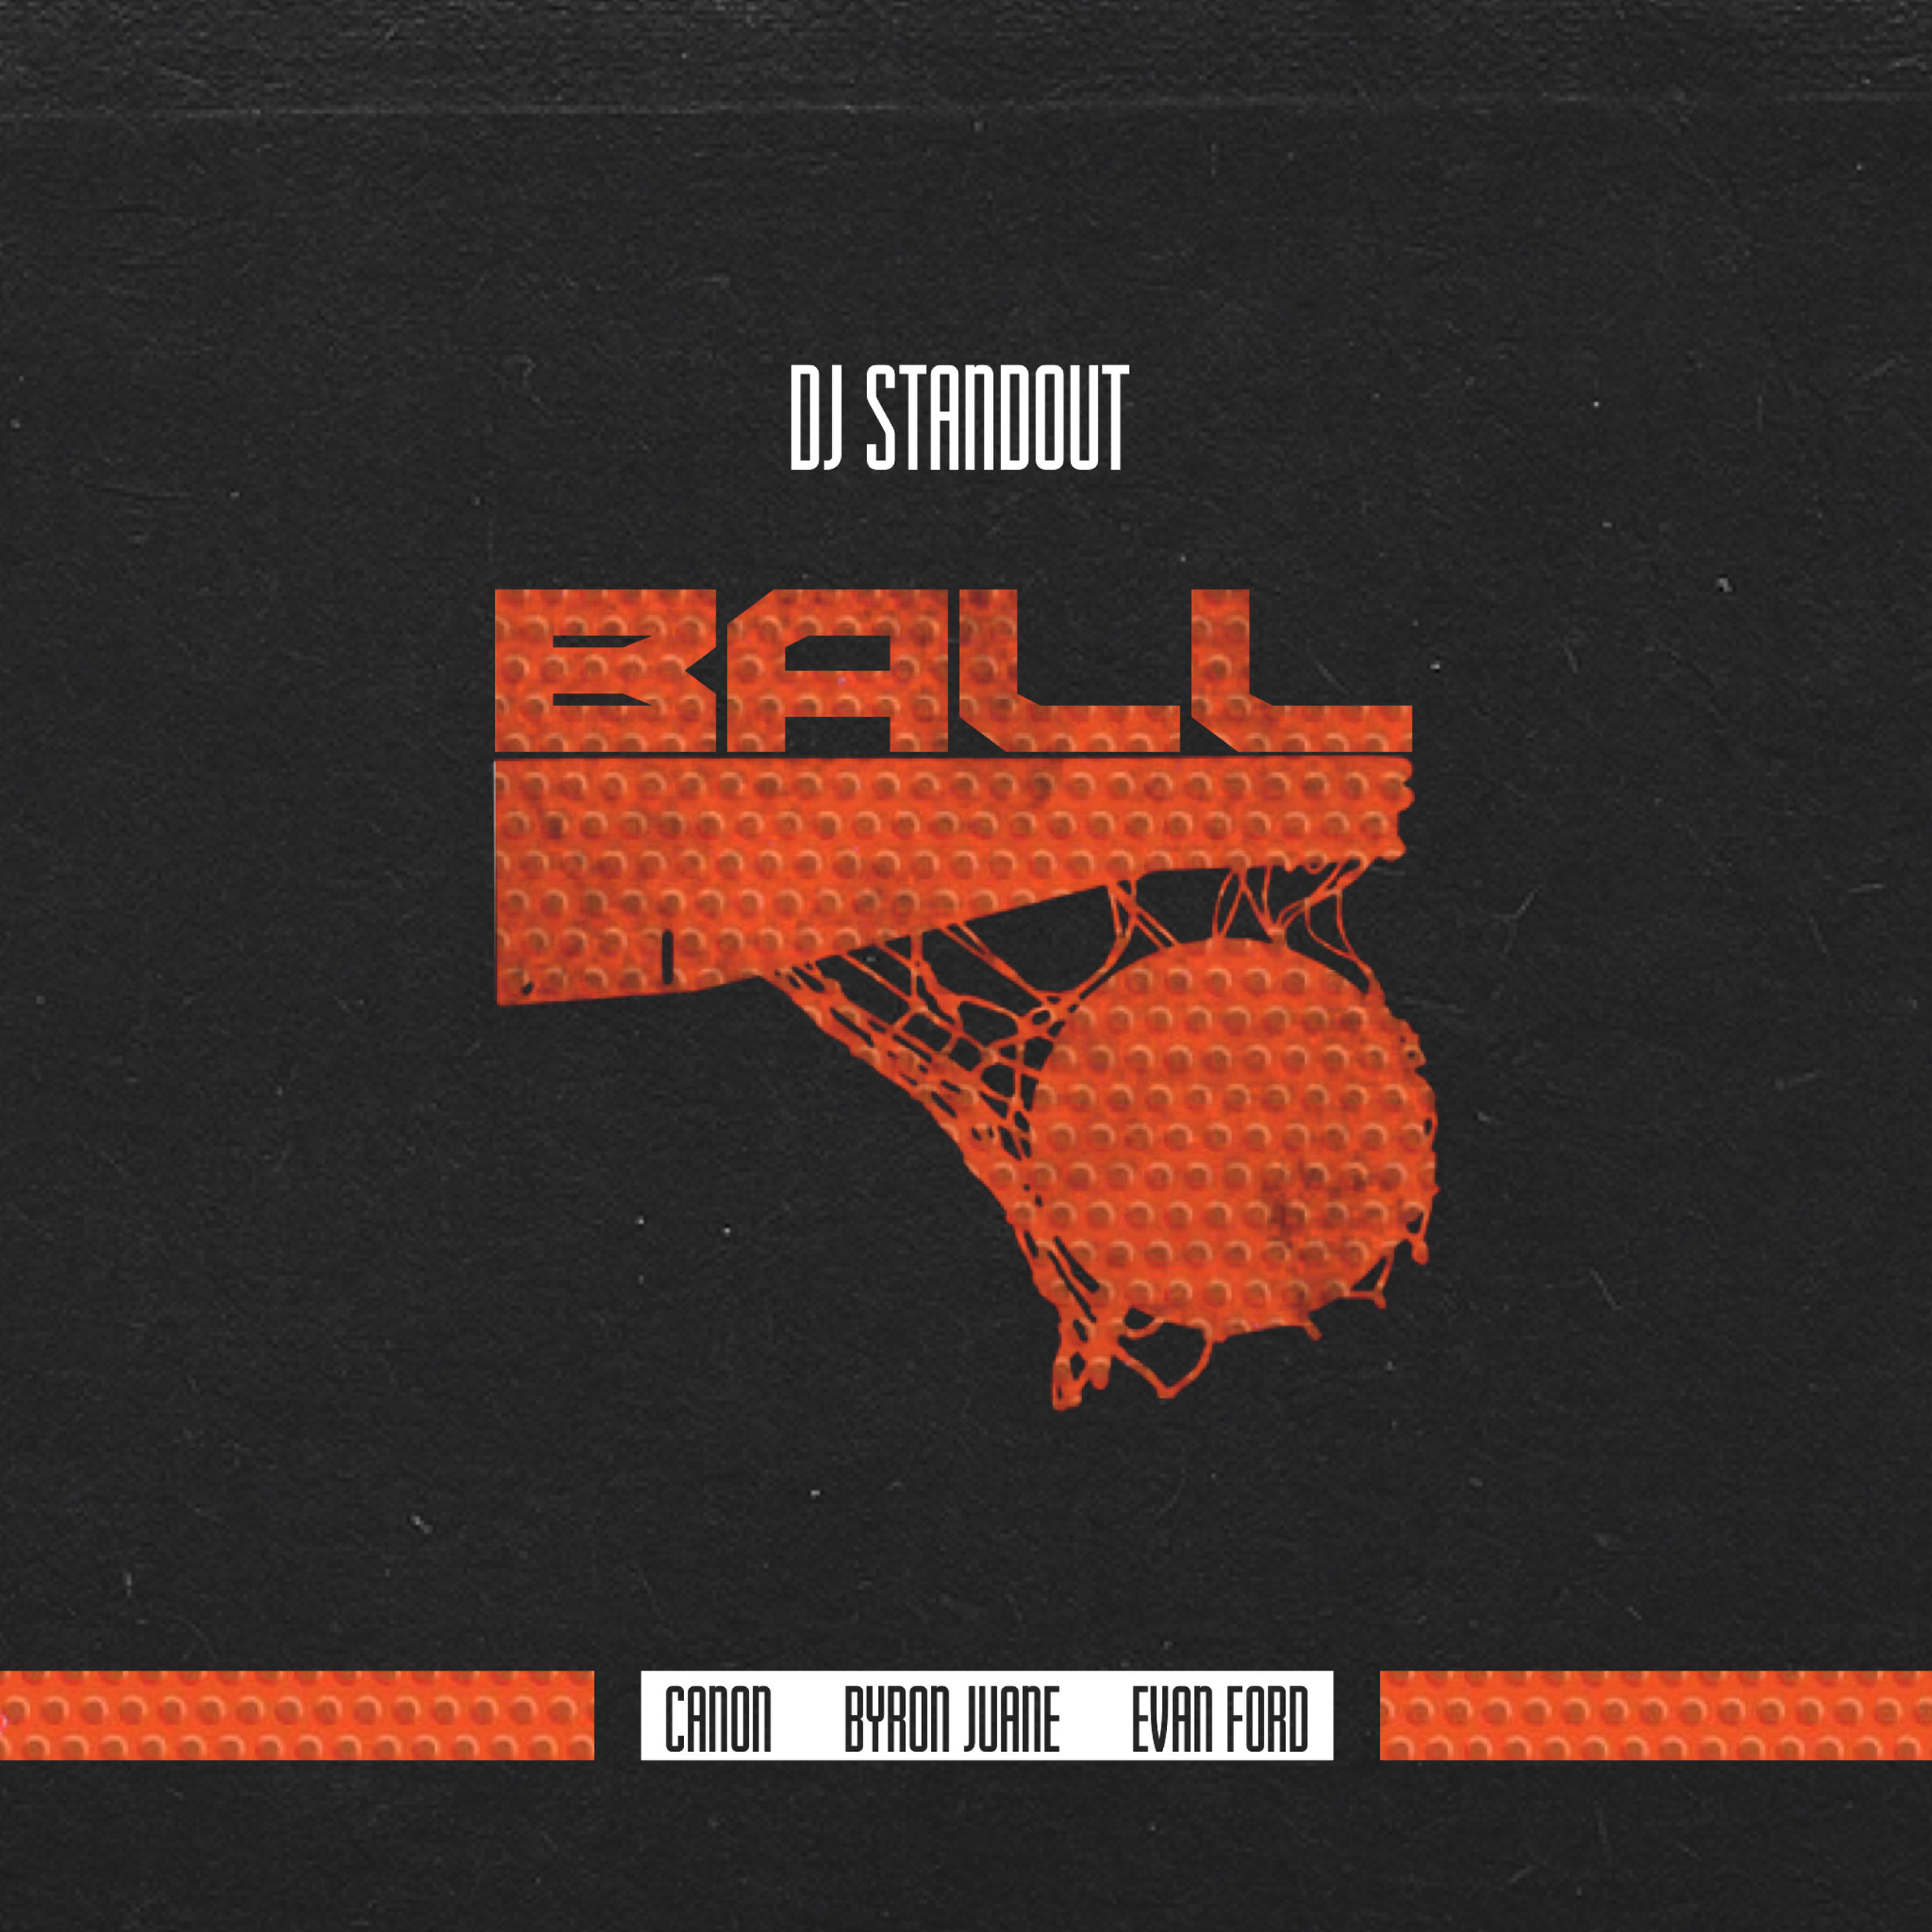 Ball - Cover Art.JPG